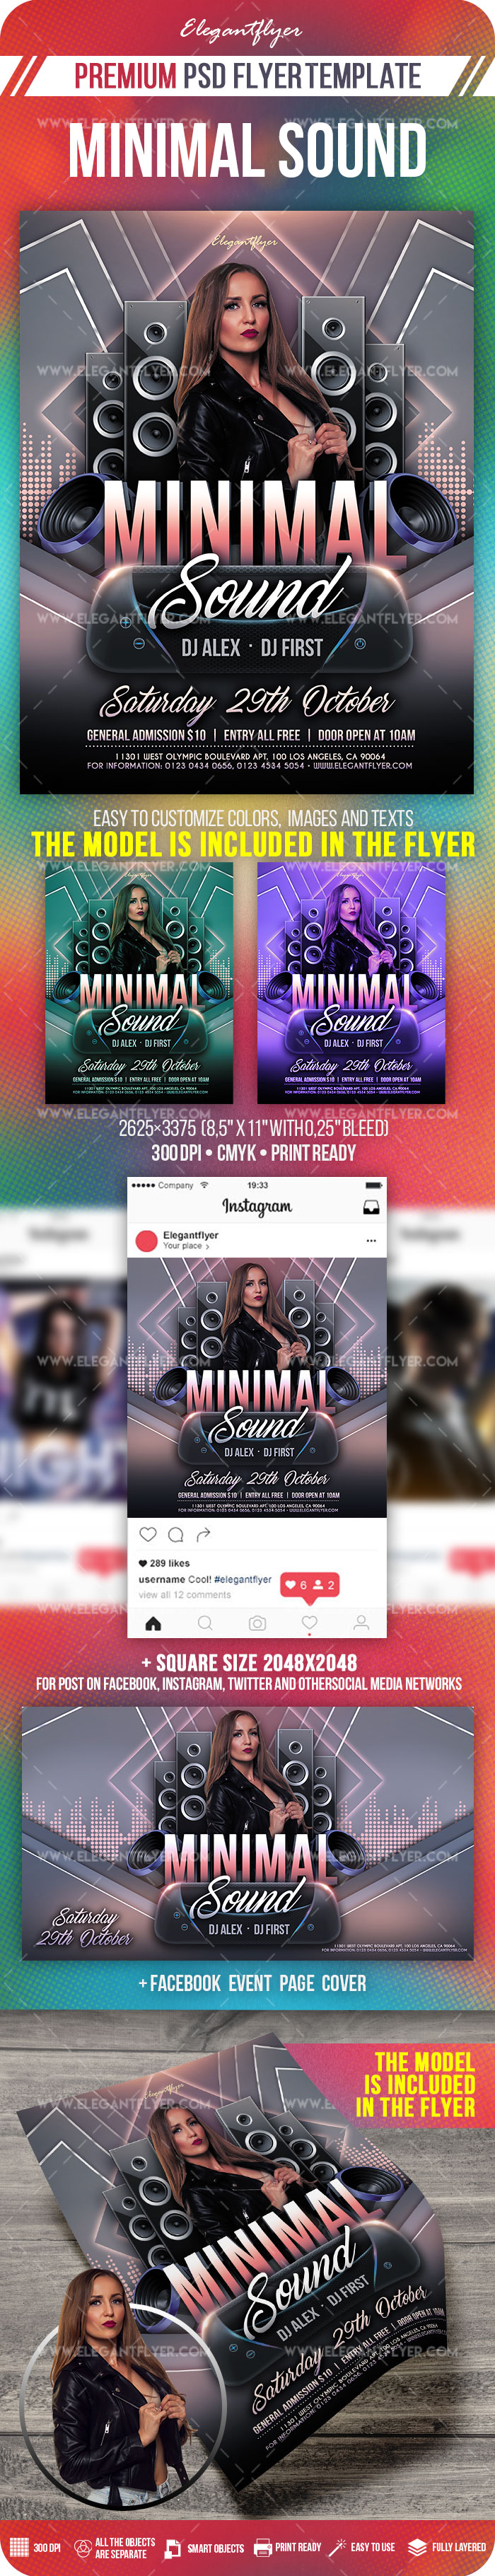 Minimal Sound – PSD Flyer Template + Facebook Cover + Instagram Post